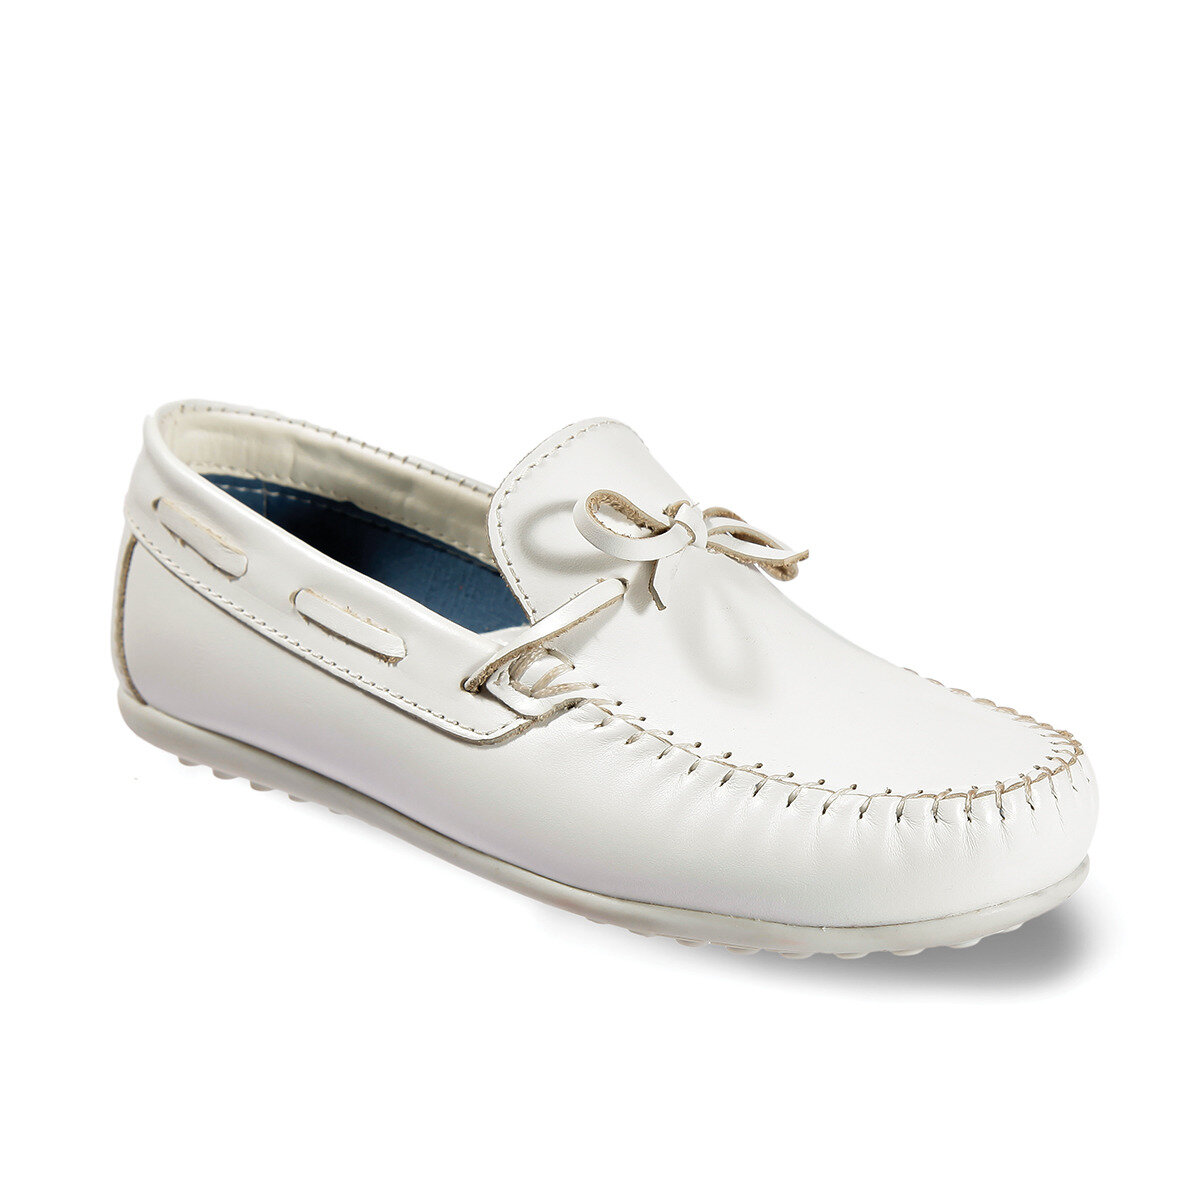 FLO 908. U.493 FILET LEATHER White Male Child Loafer Shoes VICCO